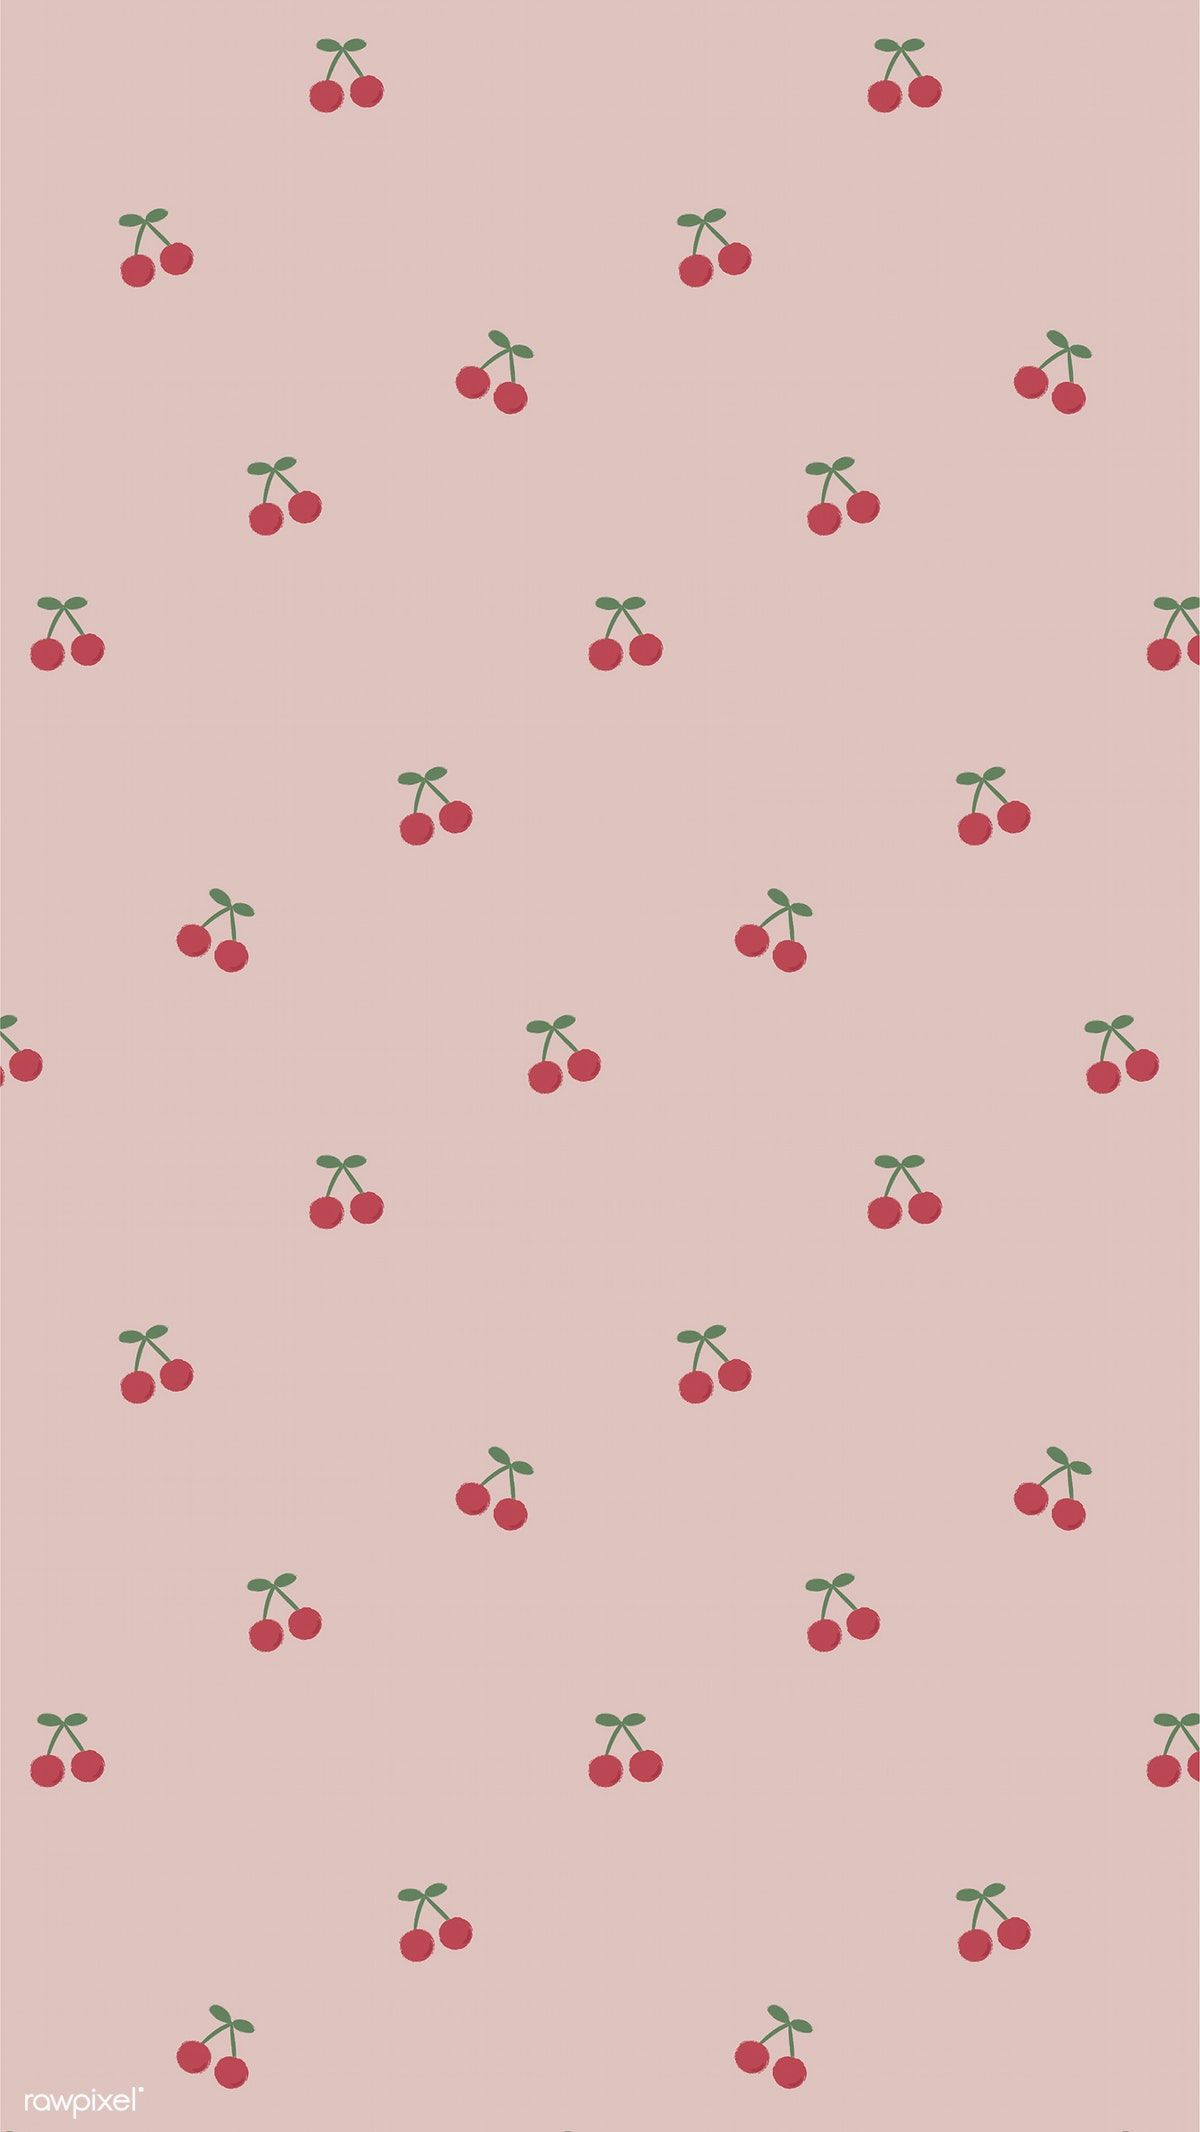 Download Premium Illustration Of Red Hand Drawn Cherry Pattern On Pink In 2020 Soft Wallpaper Pretty Wallpaper Iphone Cute Patterns Wallpaper